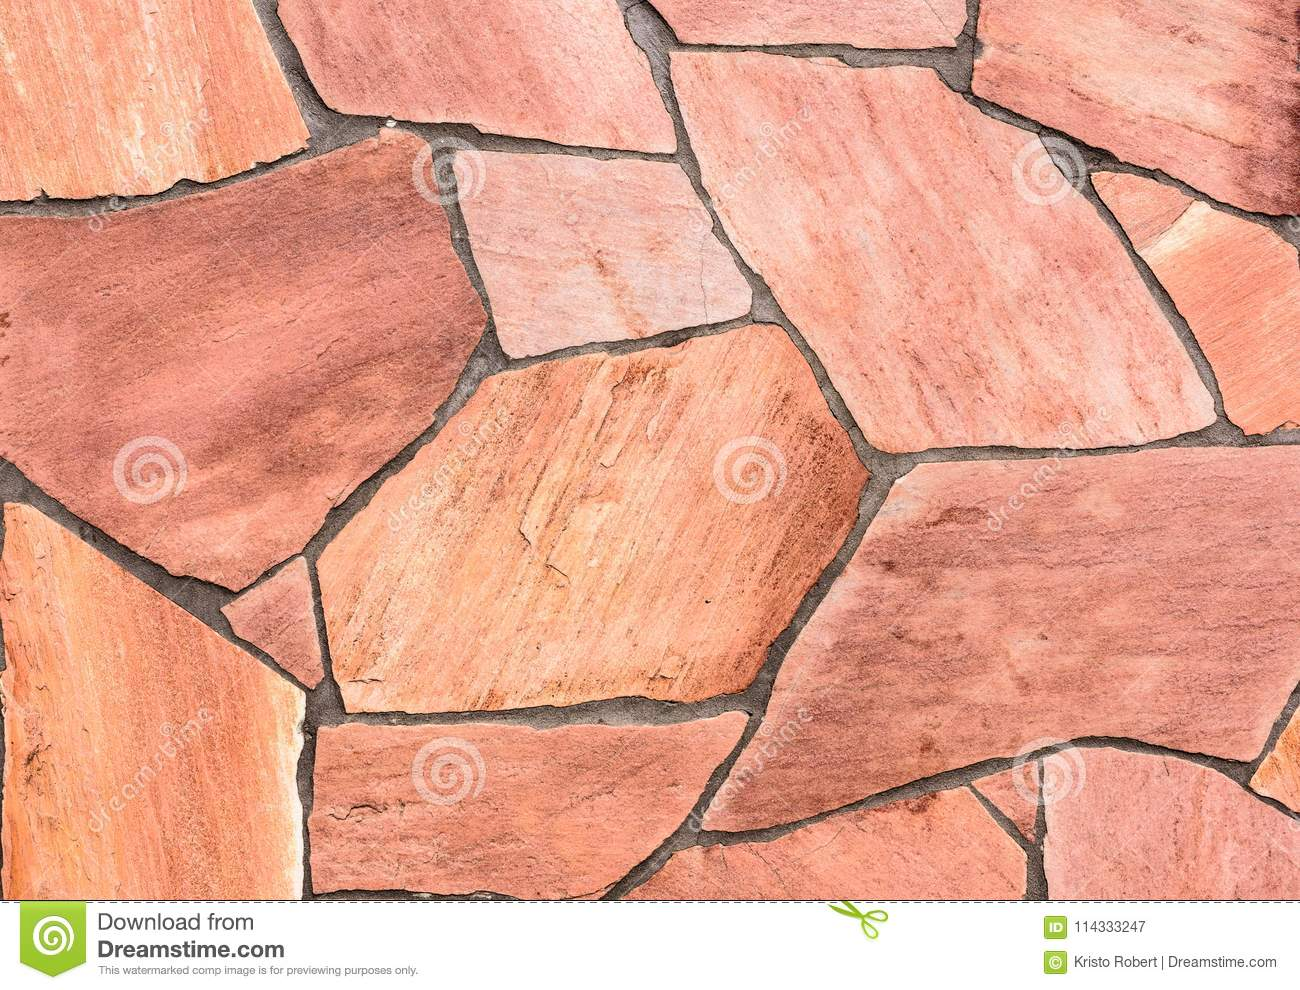 Natural stone floor texture Irregular Natural Stone Pattern Background Texture Dreamstimecom Texture Of Natural Stone Stock Image Image Of Floor 114333247